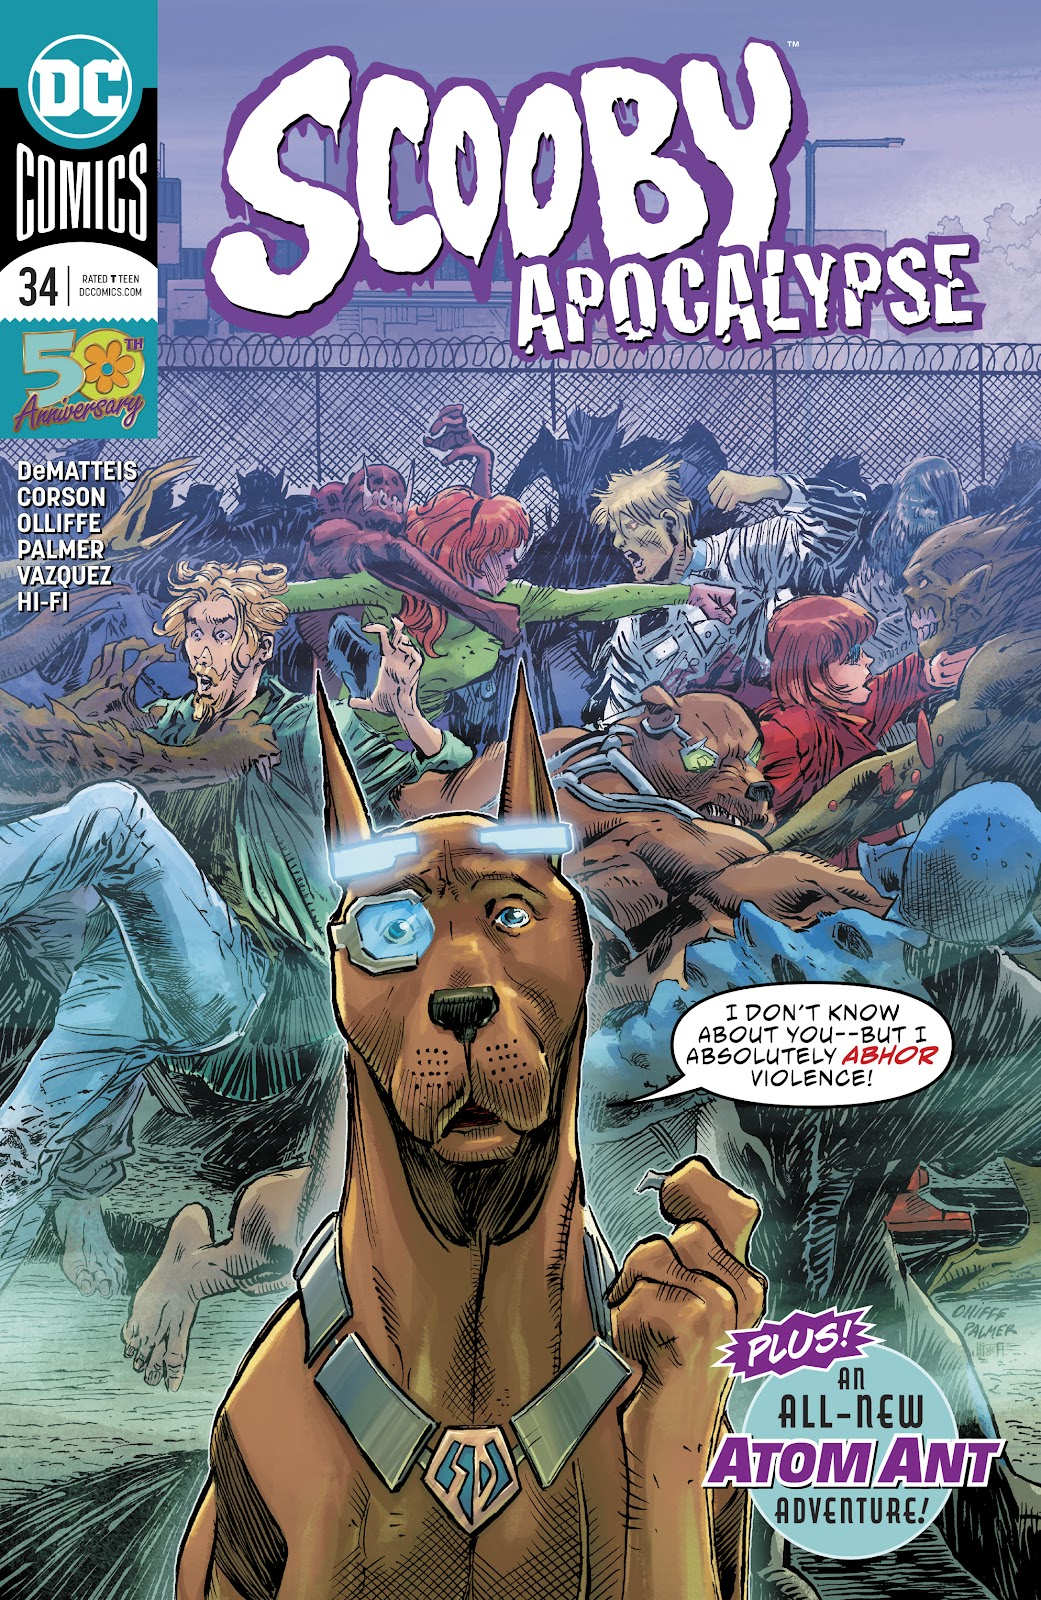 Read online Scooby Apocalypse comic -  Issue #34 - 1